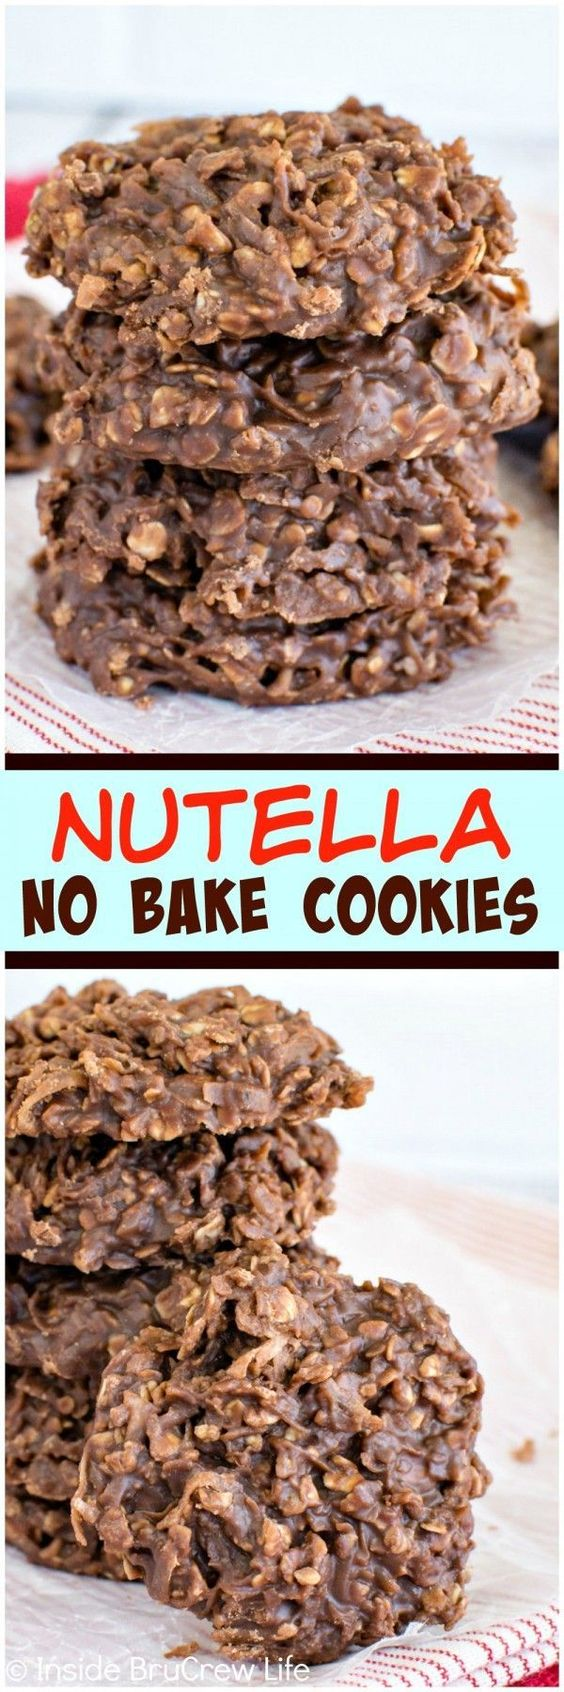 No bake cookies, Nutella and No bake desserts on Pinterest